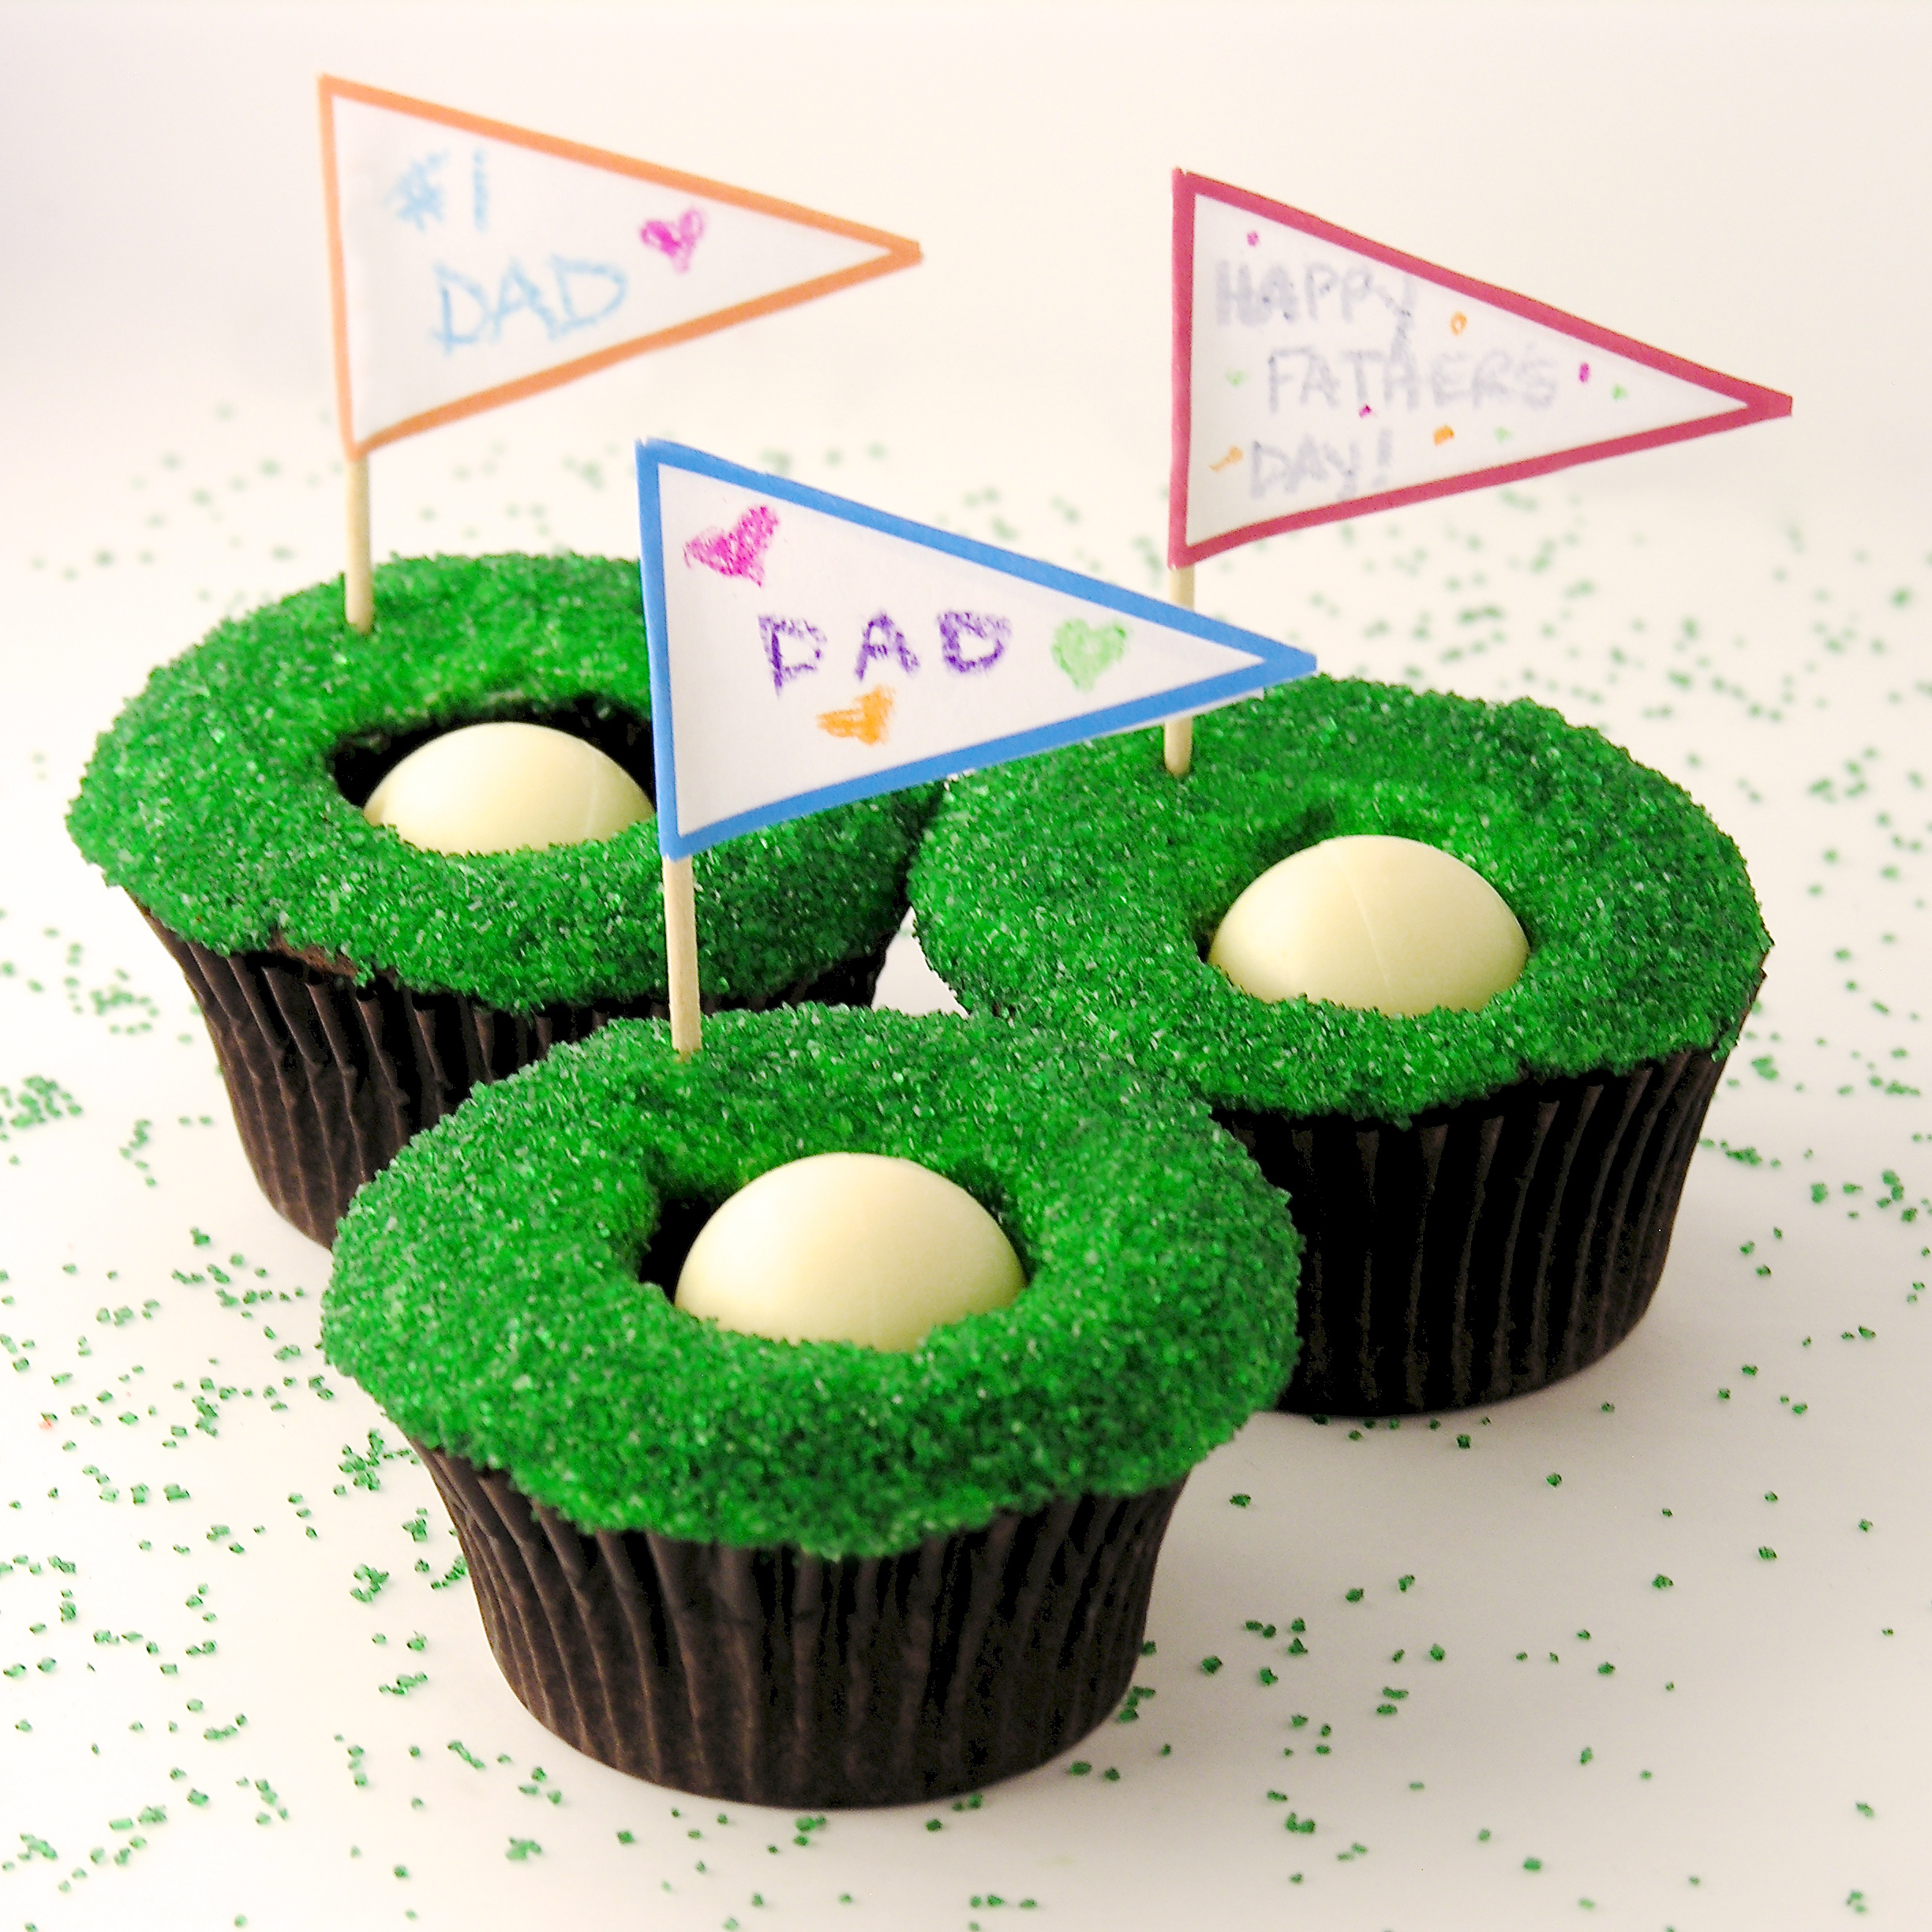 Hole in One Cupcakes!! | eASYbAKED